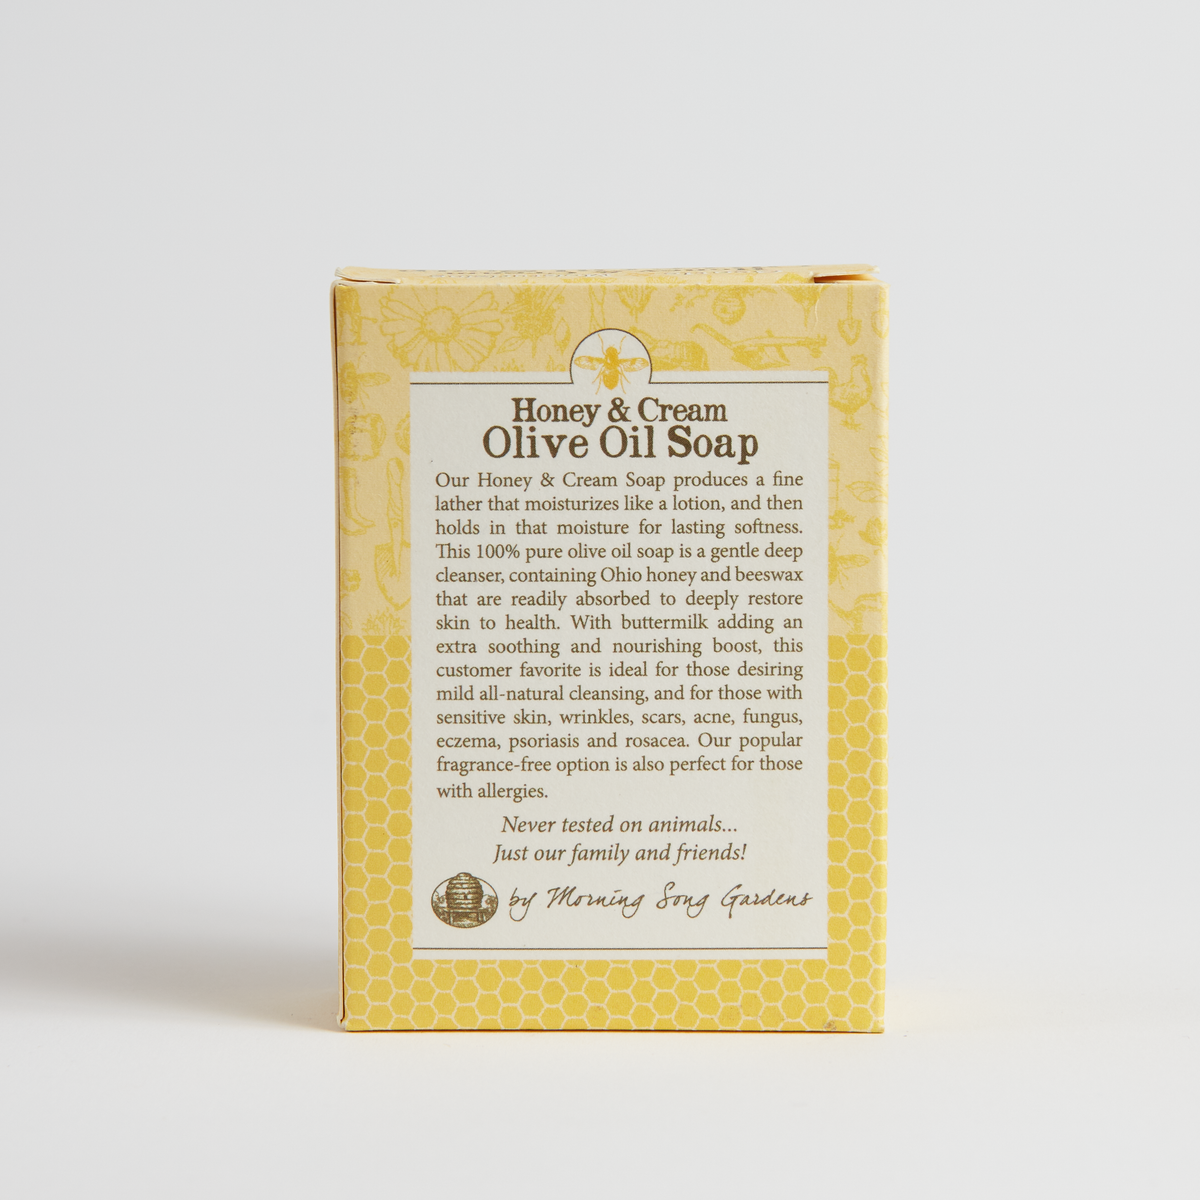 Morning Song Gardens Honey & Cream Olive Oil Soap - 4.5 Oz